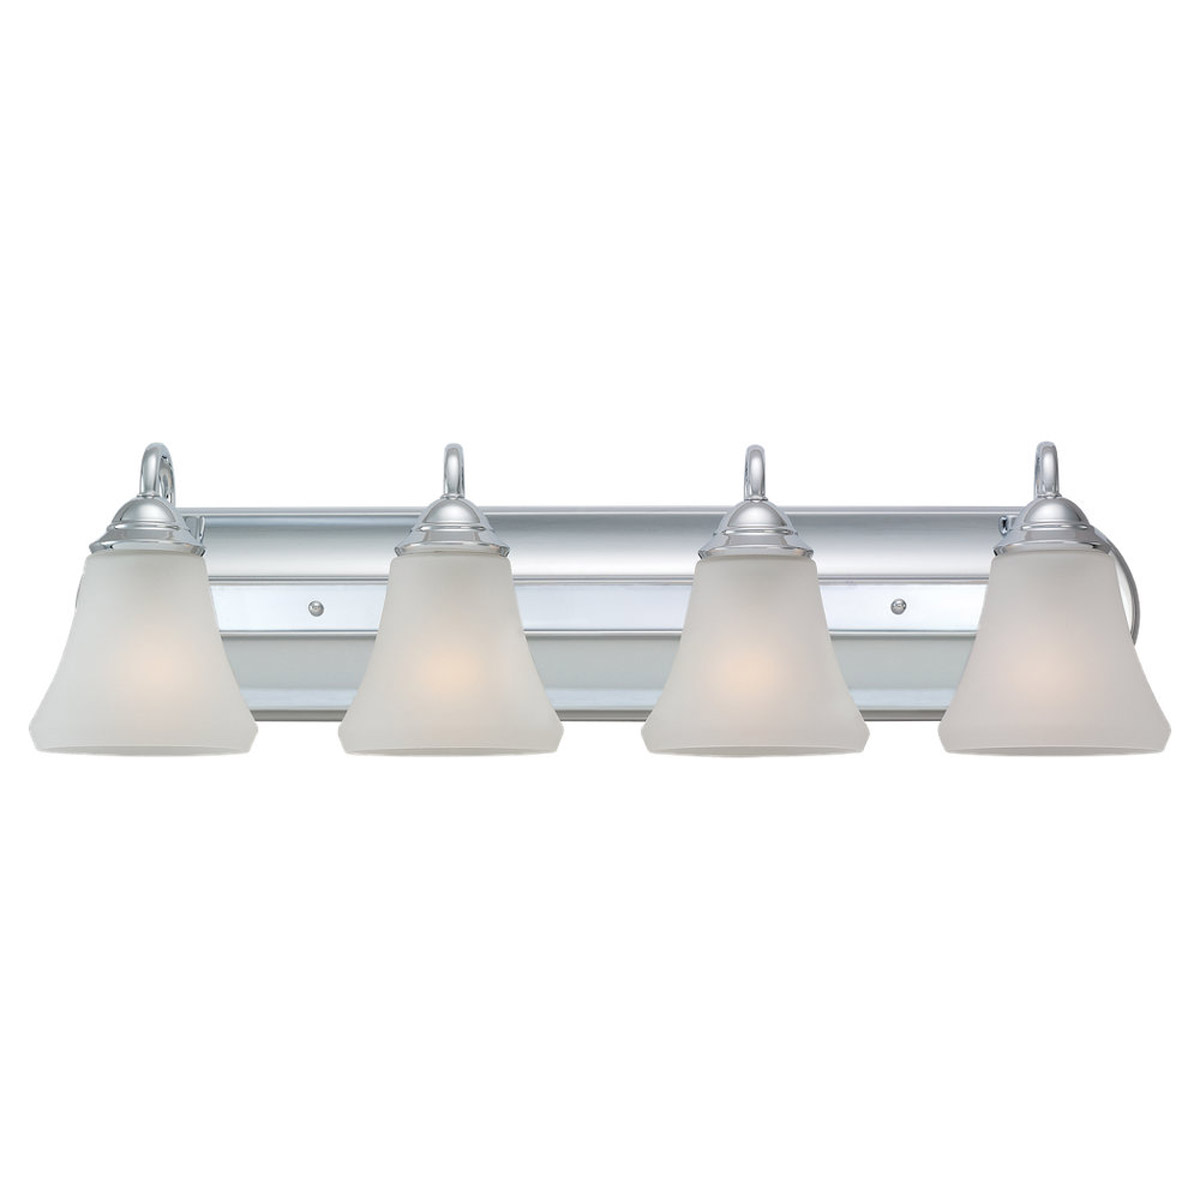 Sea Gull Lighting Fiona 4 Light Wall / Bath / Vanity in Chrome 44558-05 photo